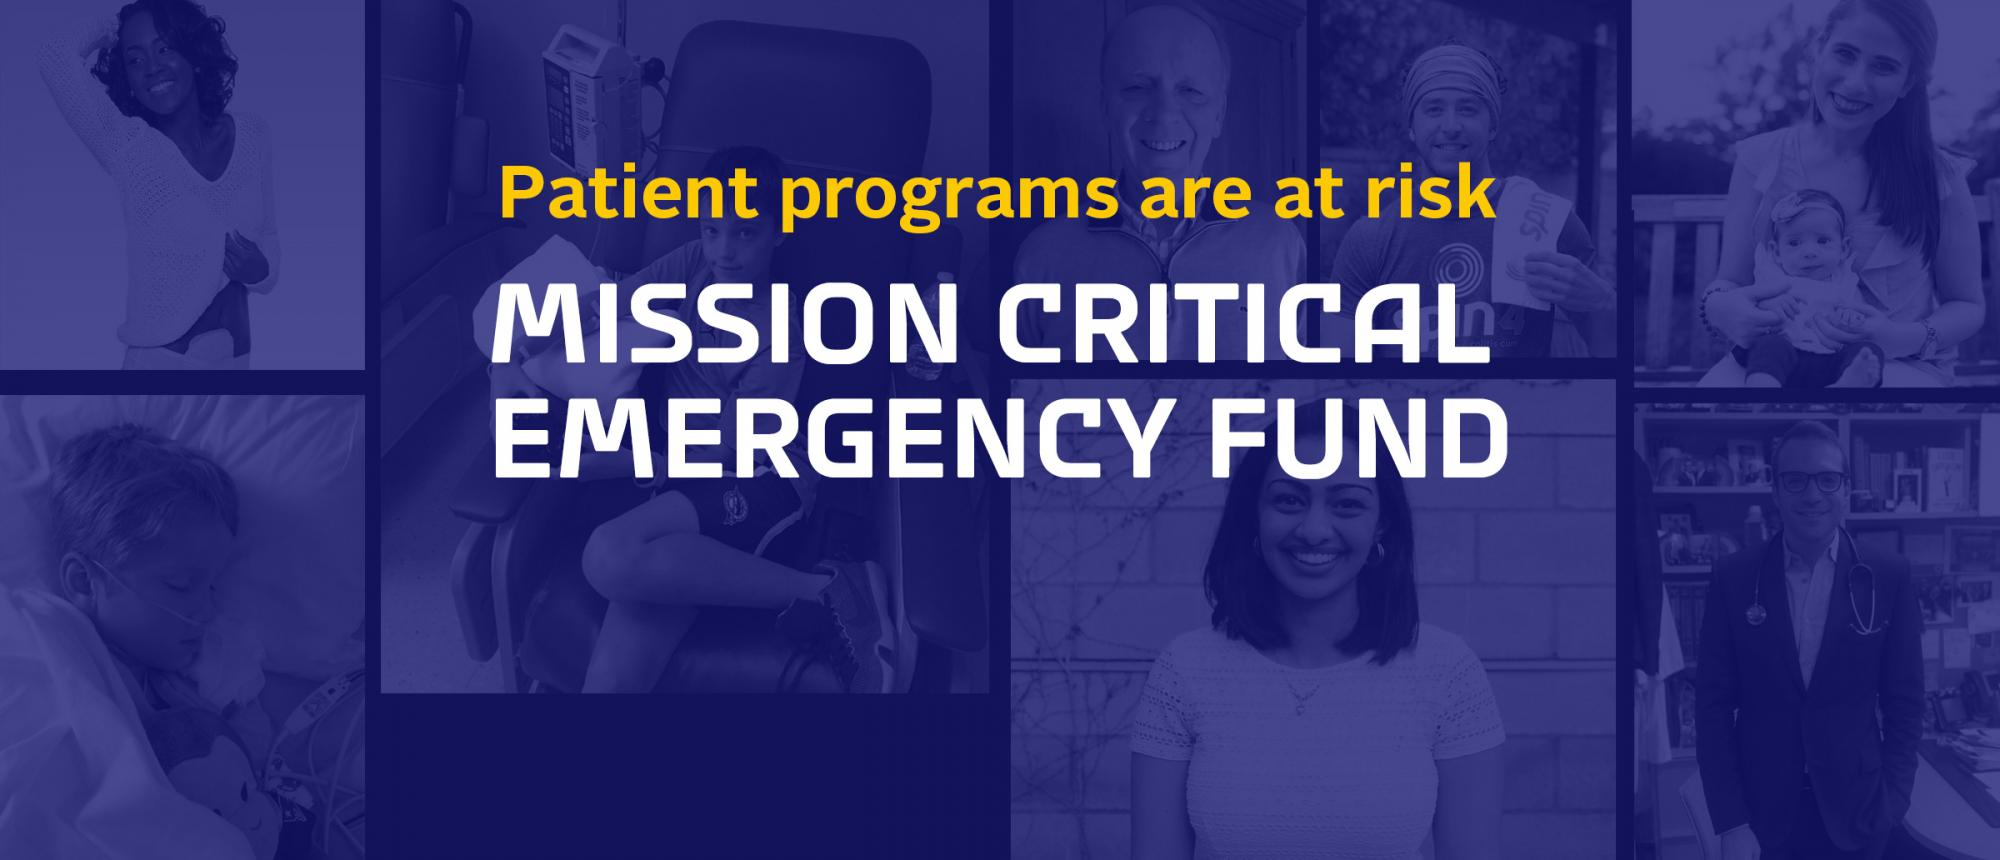 Crohn's & Colitis Foundation Mission Critical Emergency Fund